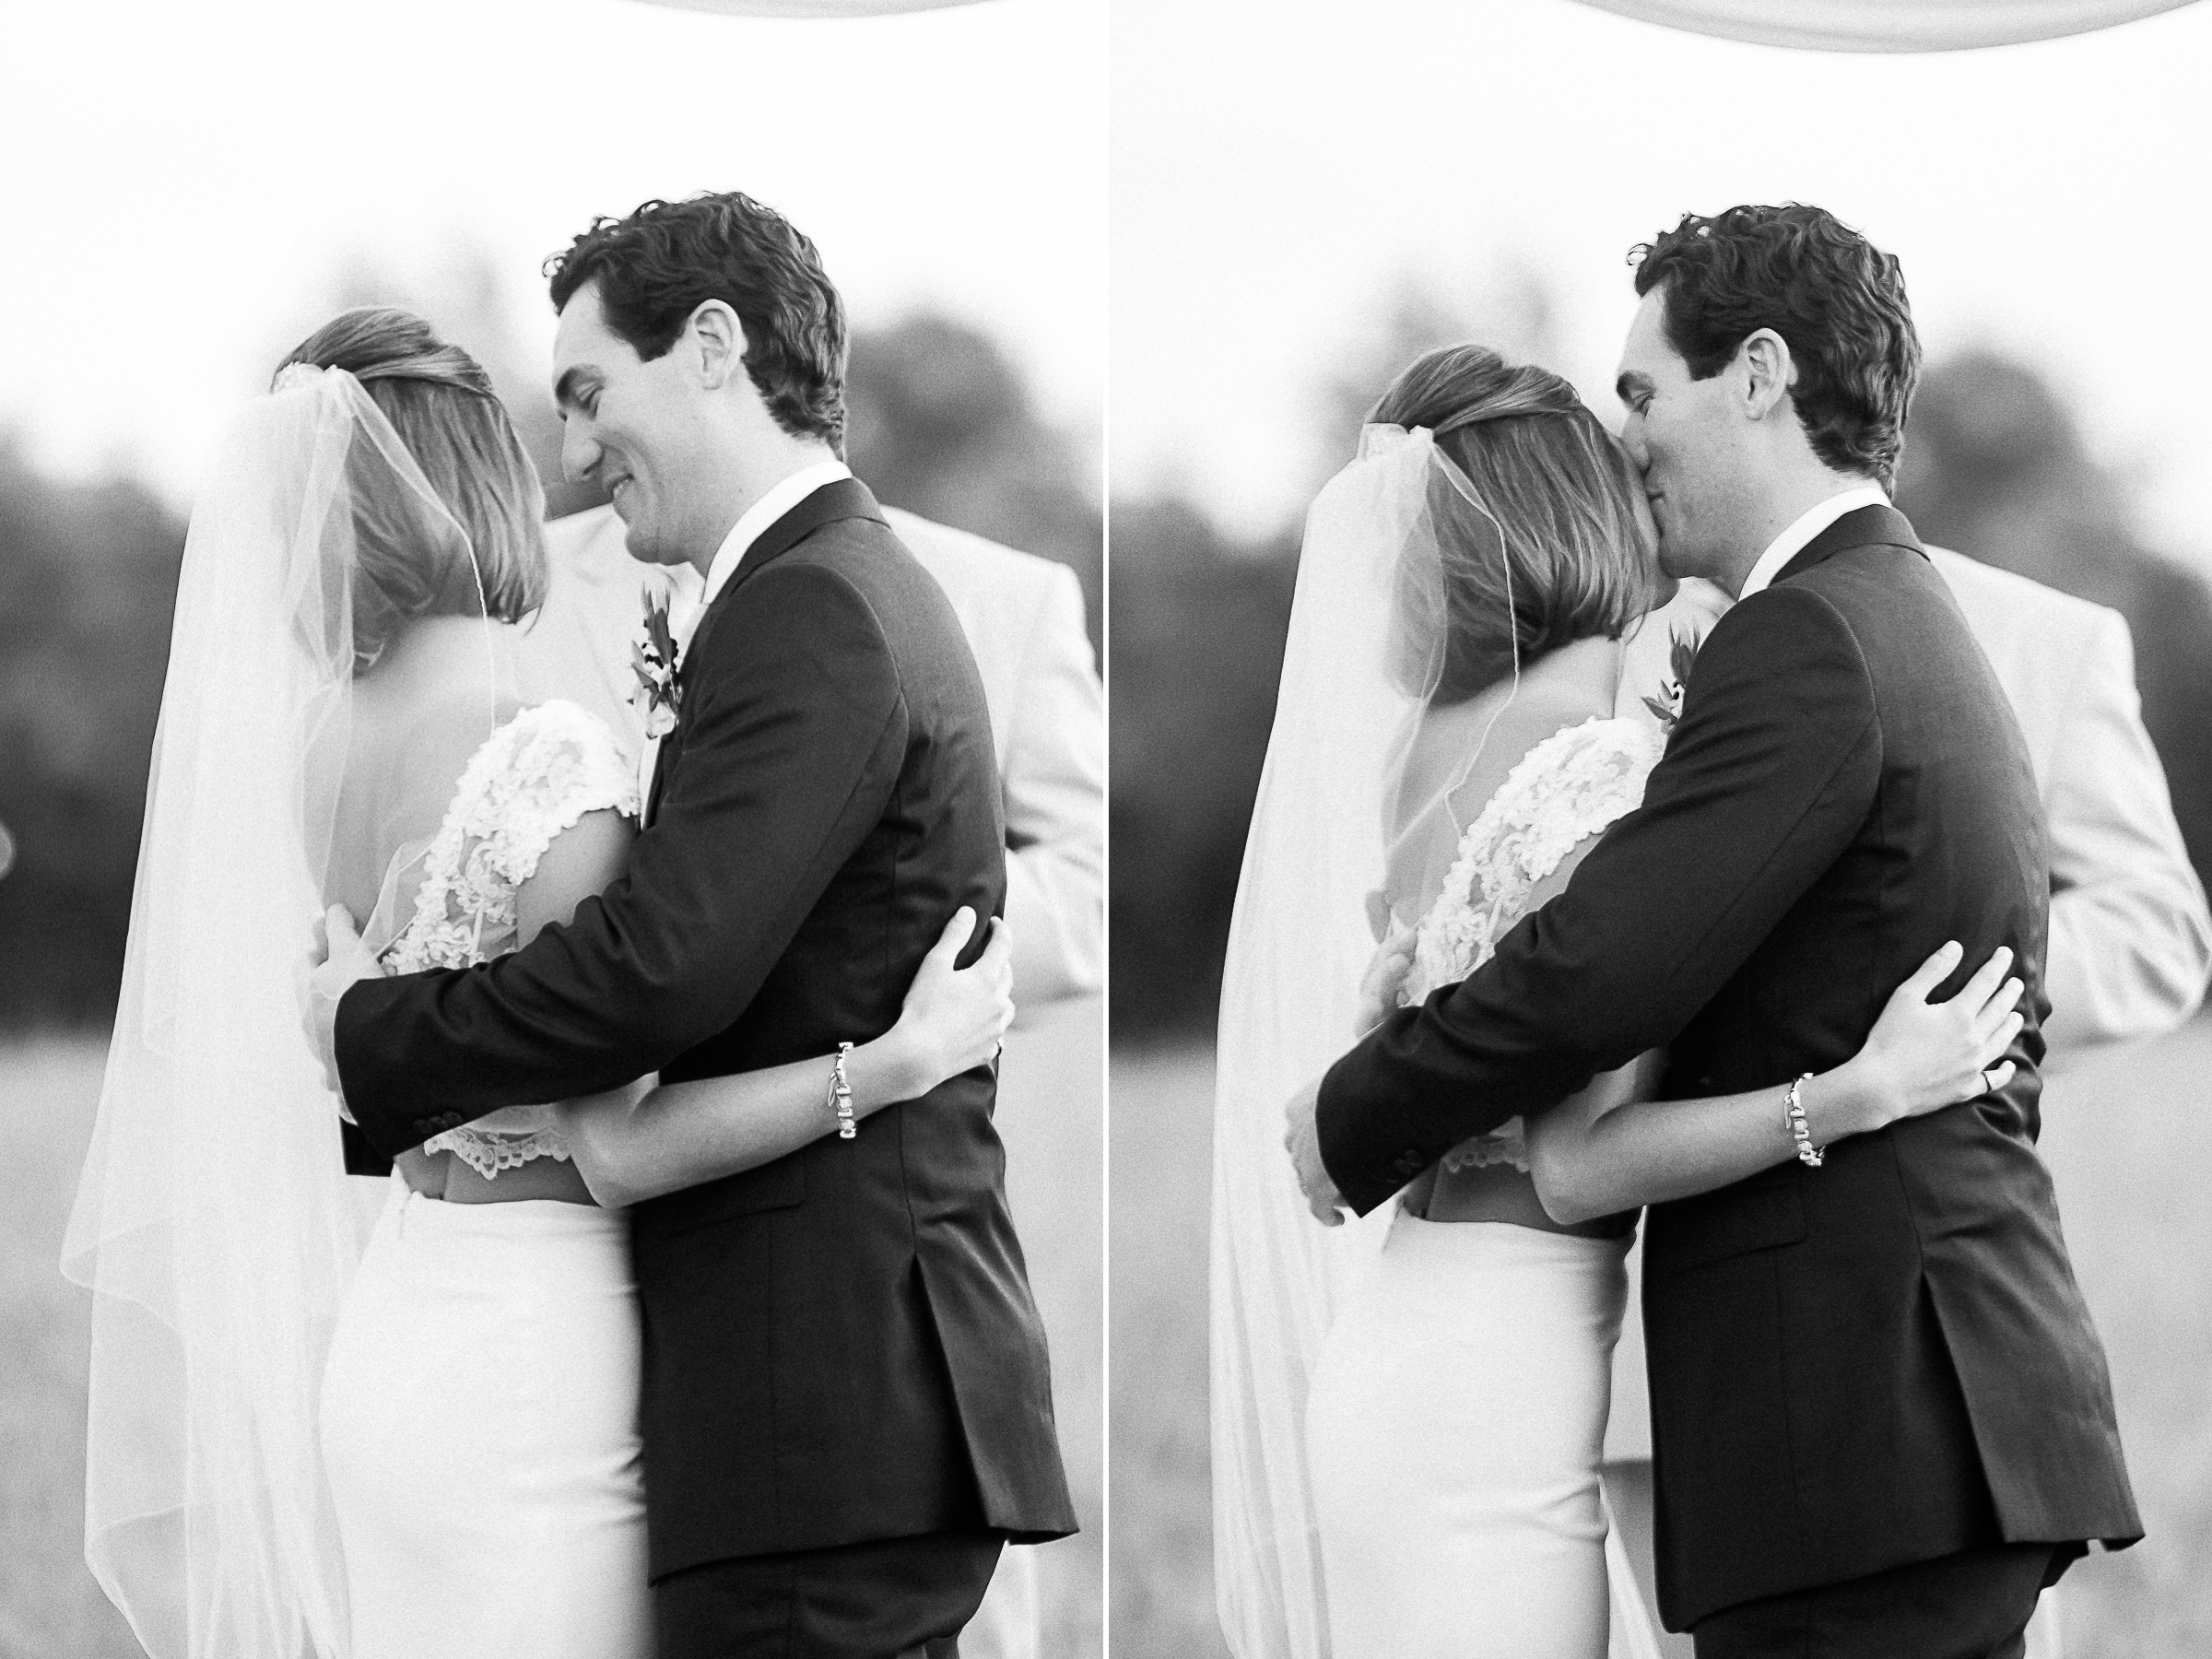 bride and groom ceremony in black and white